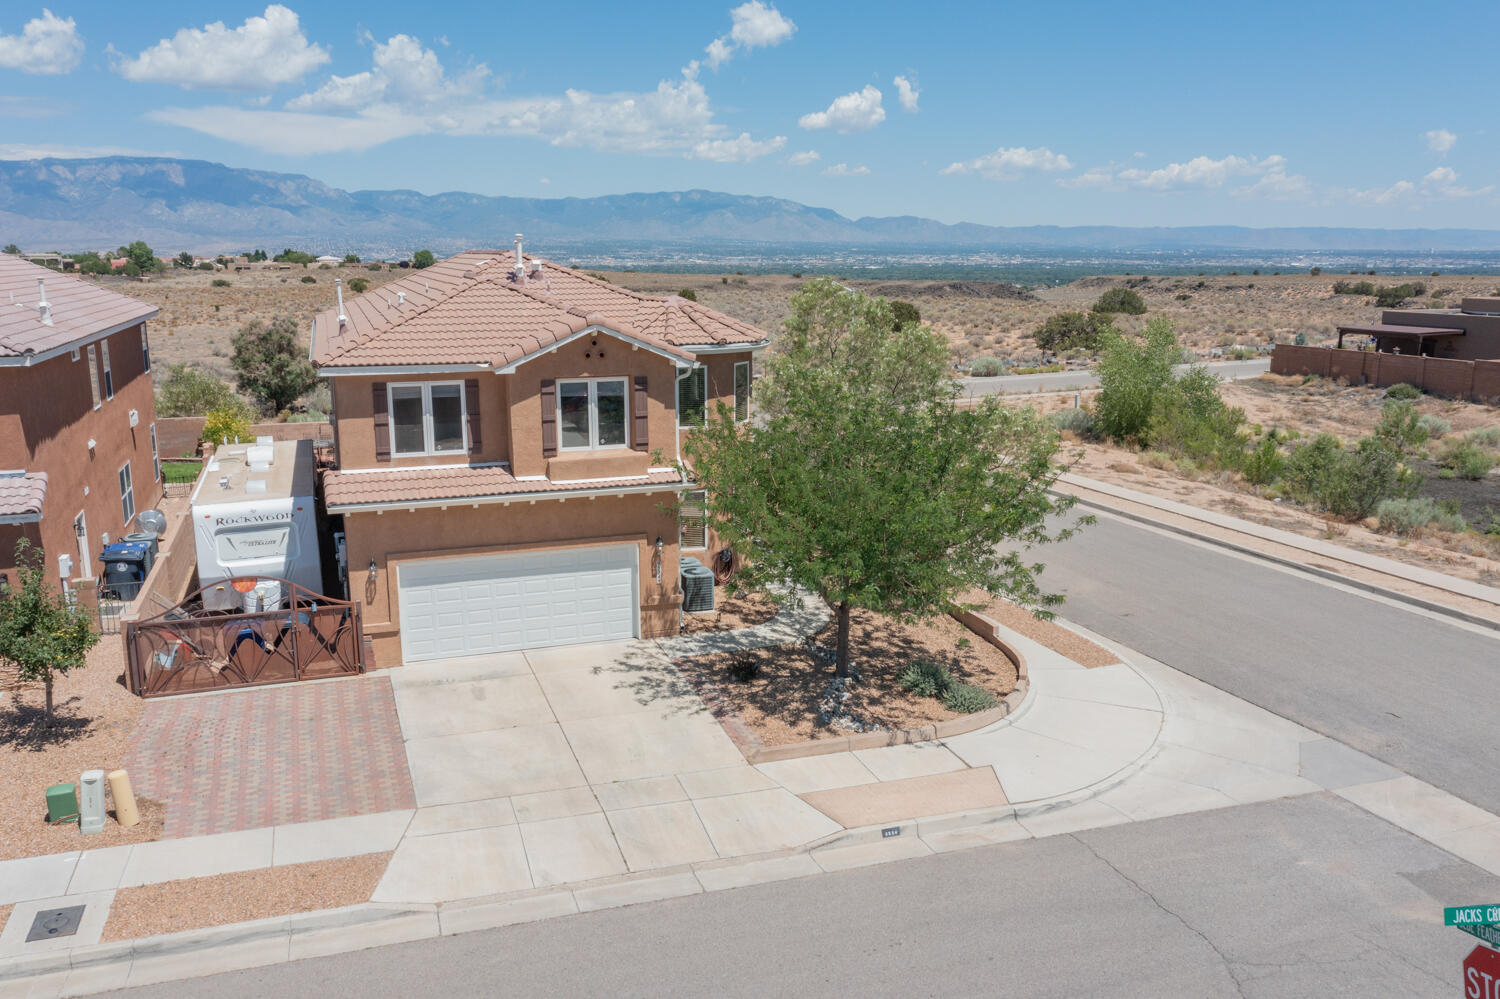 A rare find! This 5 bedroom with a loft, office space, formal dining room, large eat in kitchen has the space you are looking for with owned solar too!! Don't miss out on the views from the backyard with petroglyph national monument land directly behind the property (No future builds!!). The north side of the home has backyard access for your toys or camper! Inside of the home you will find an area that can be used as an office/playroom/etc, front living (large enough for a pool table), formal dining room, eat in kitchen and living room. Head upstairs to find FIVE bedrooms, a loft, and a large master bathroom with a beautiful master bathroom, walk in closet and private balcony. The property is 100% landscaped as well! This home is truly exceptional and waiting for its new owners